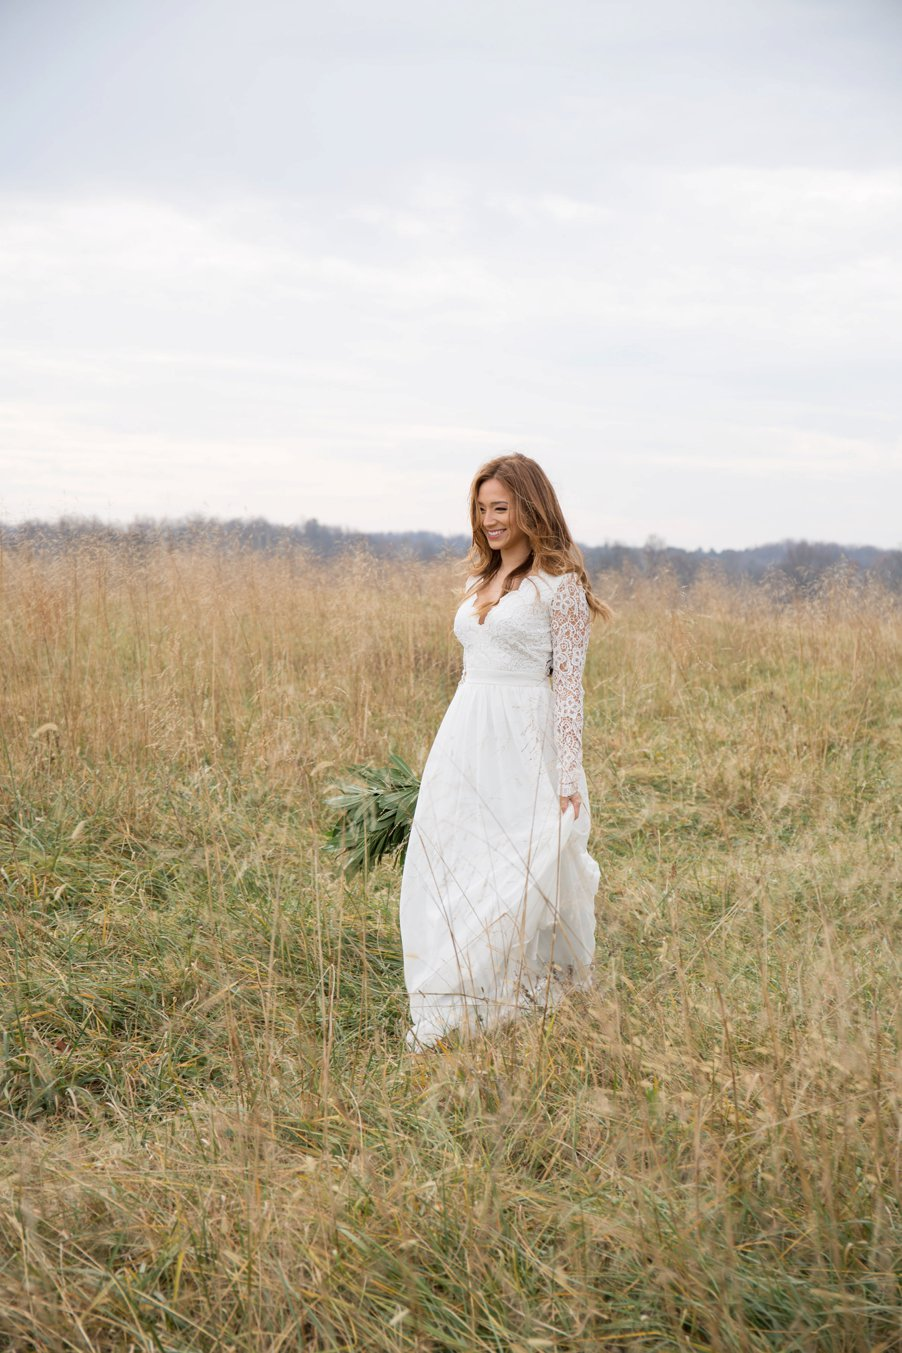 bride smiling and walking through field